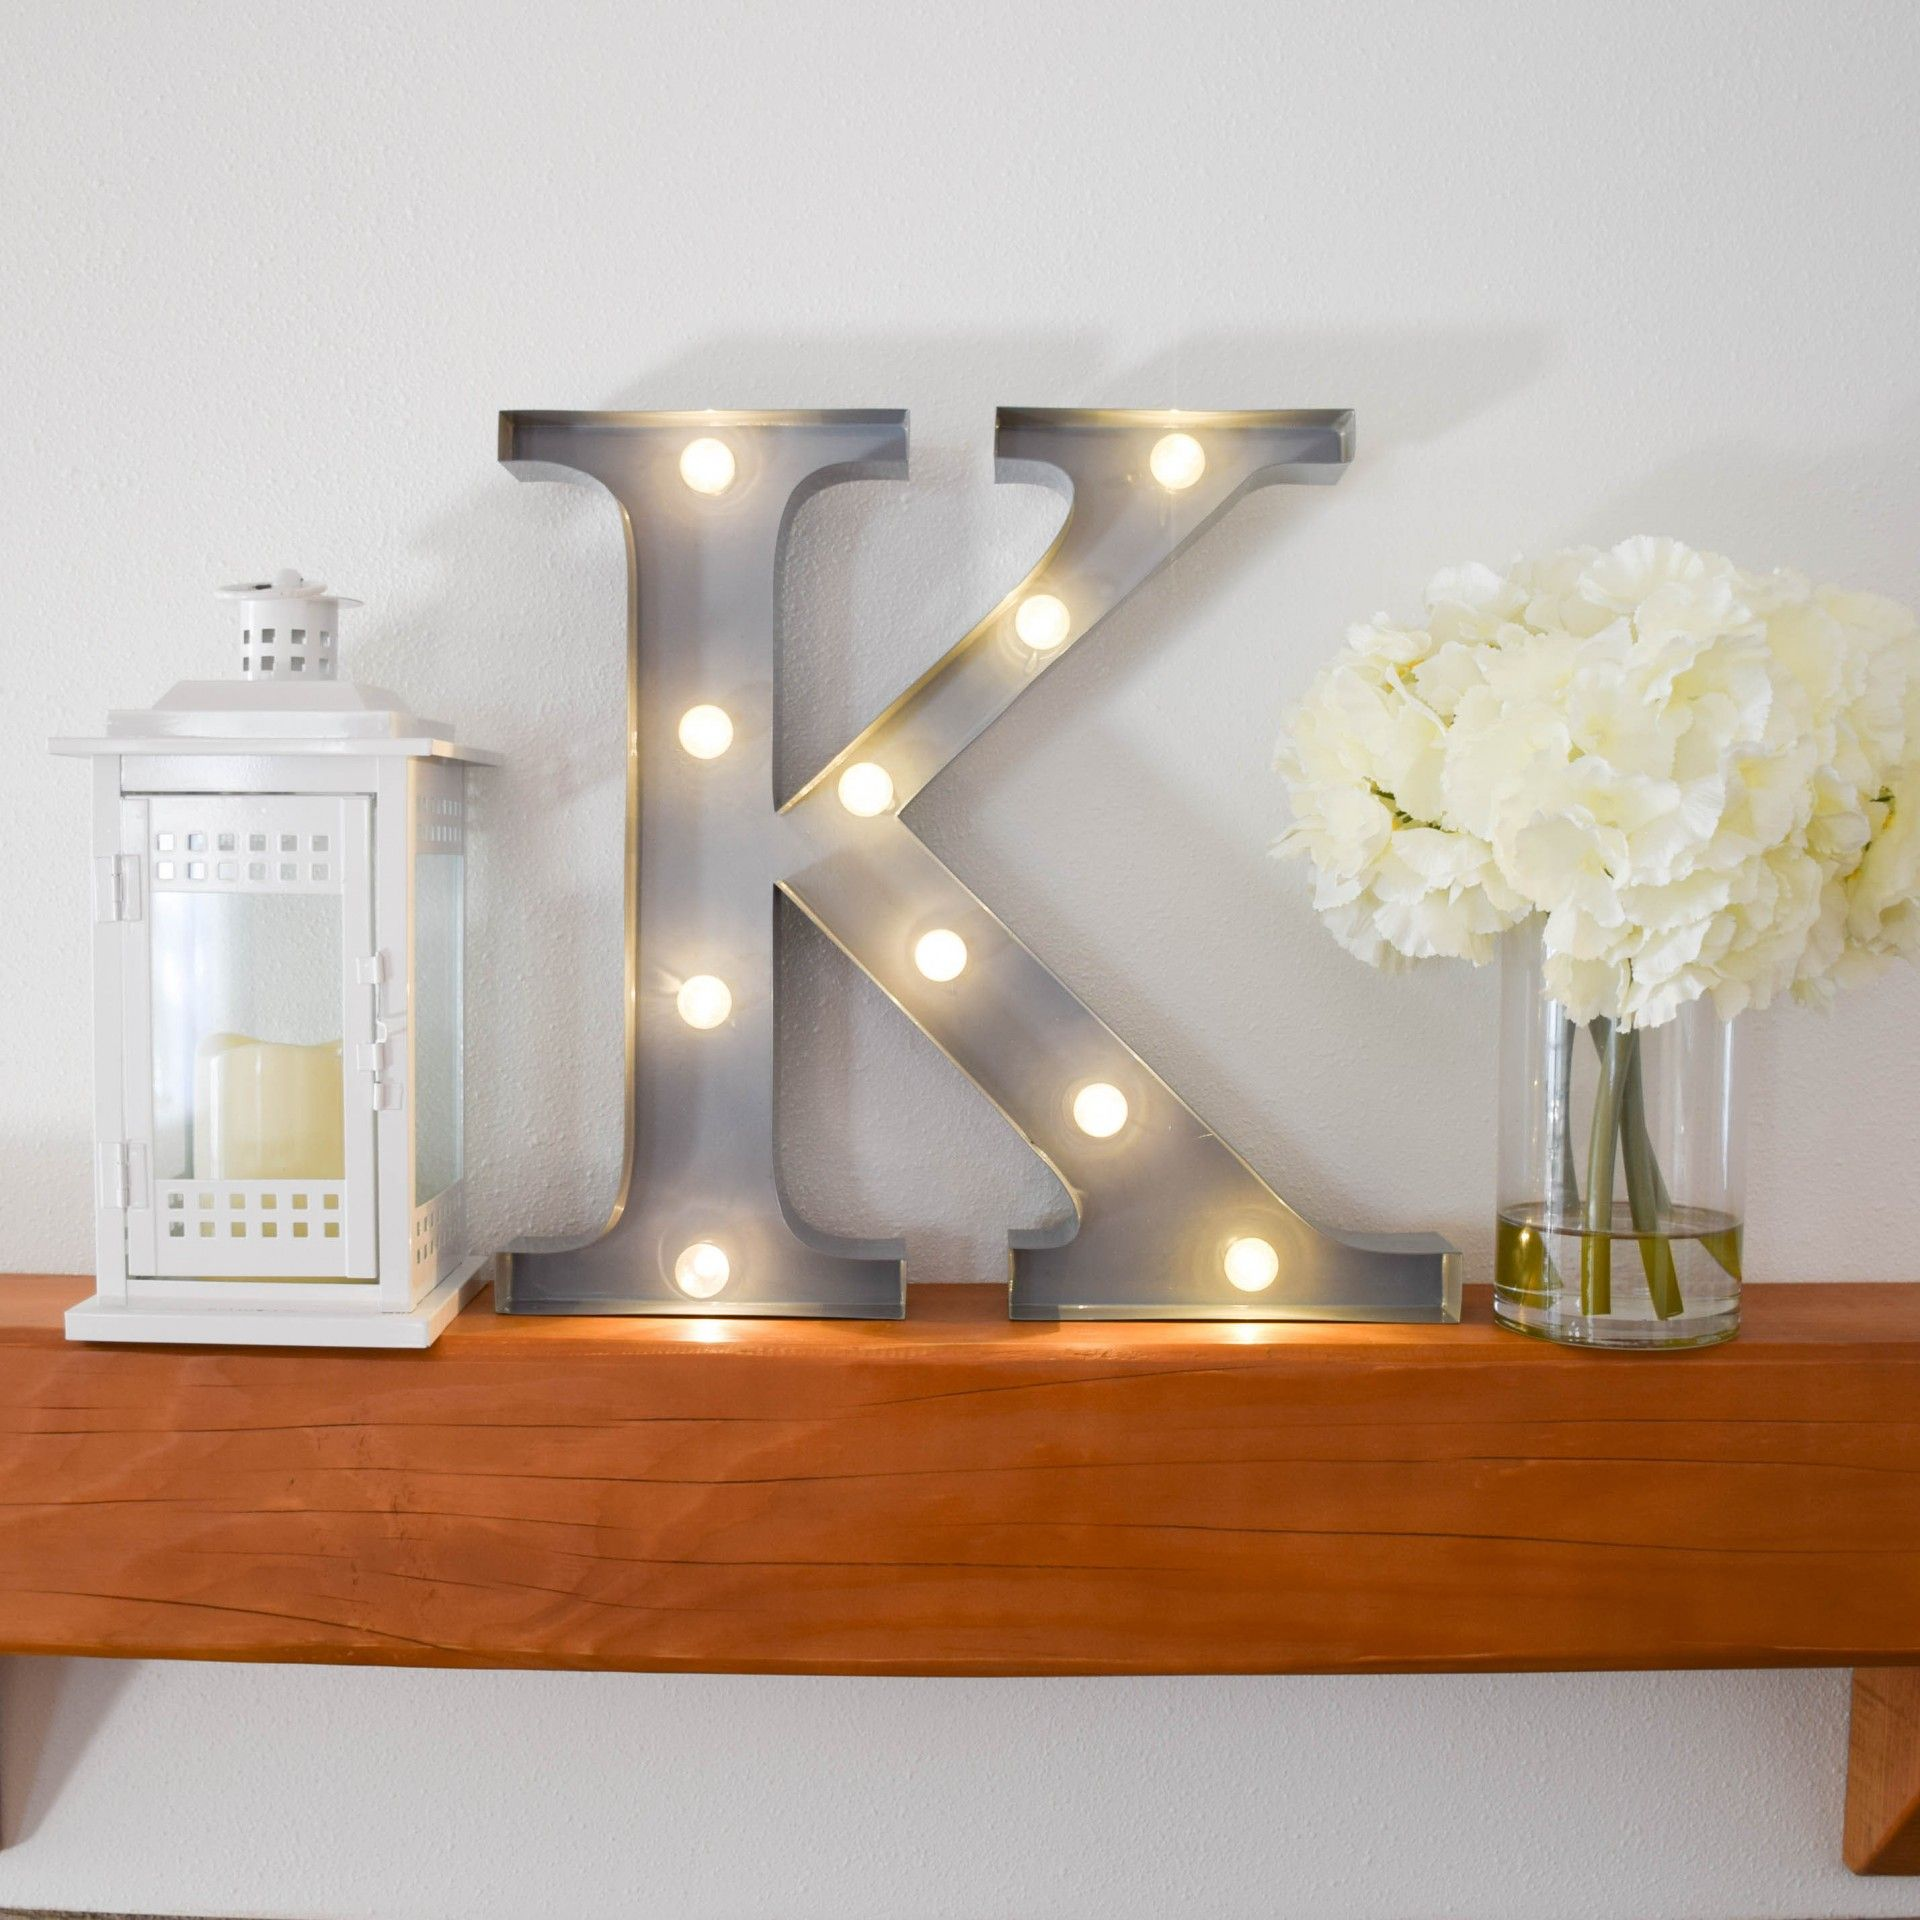 Ka K Letter Marquee Light Led Battery Operated Greek Letters Available For All Sororities 22mm Up Wall Decor Great Your Sorority House